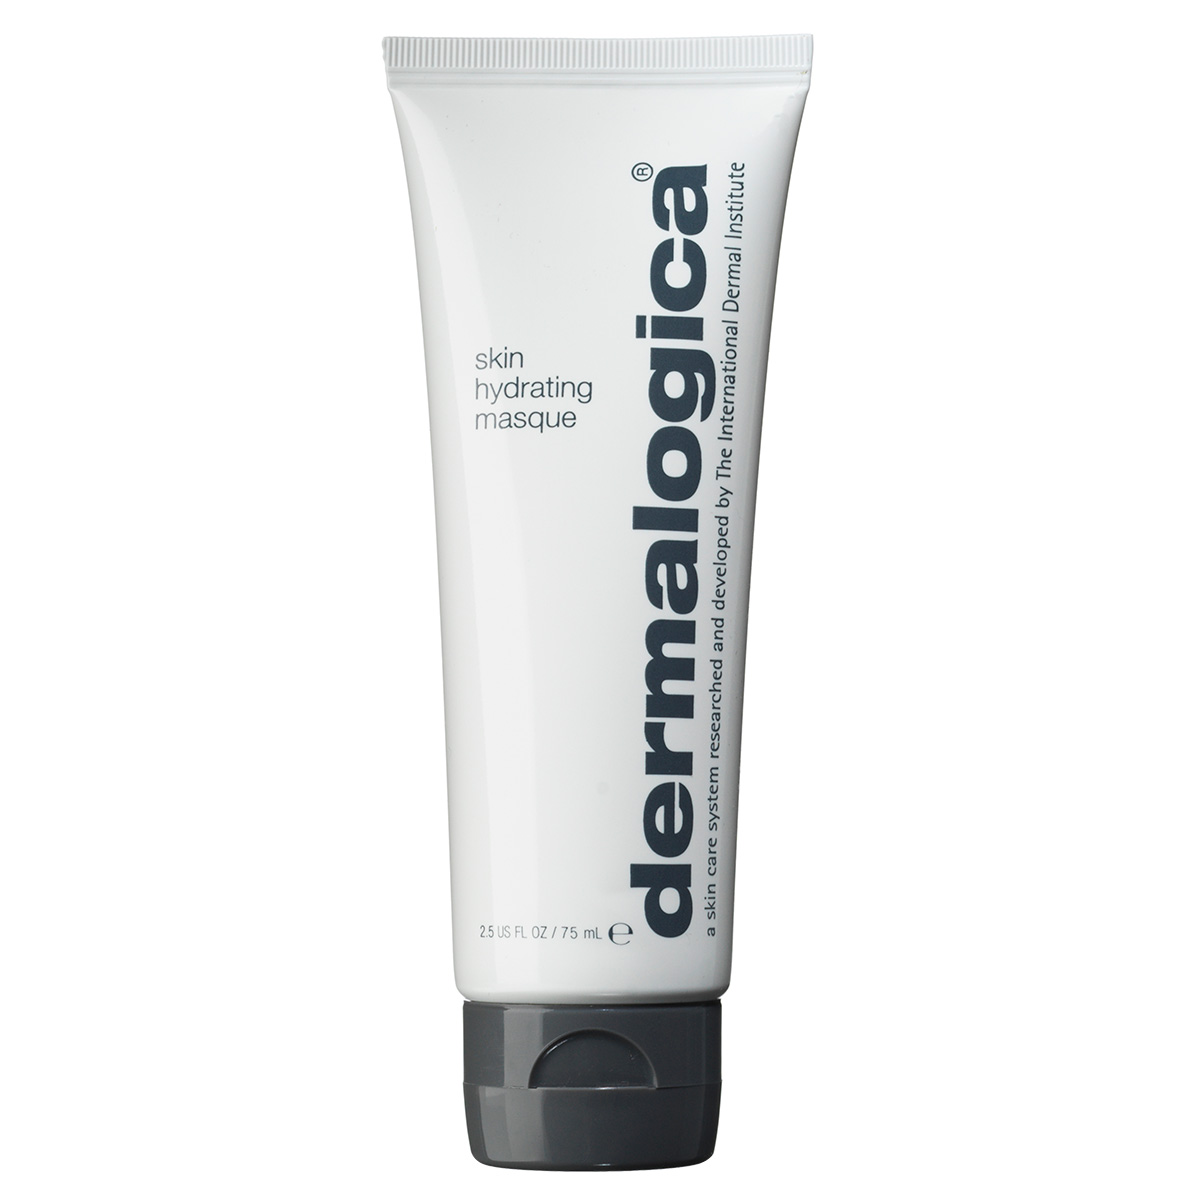 Dermalogica Skin Hydrating Masque - 75 ml